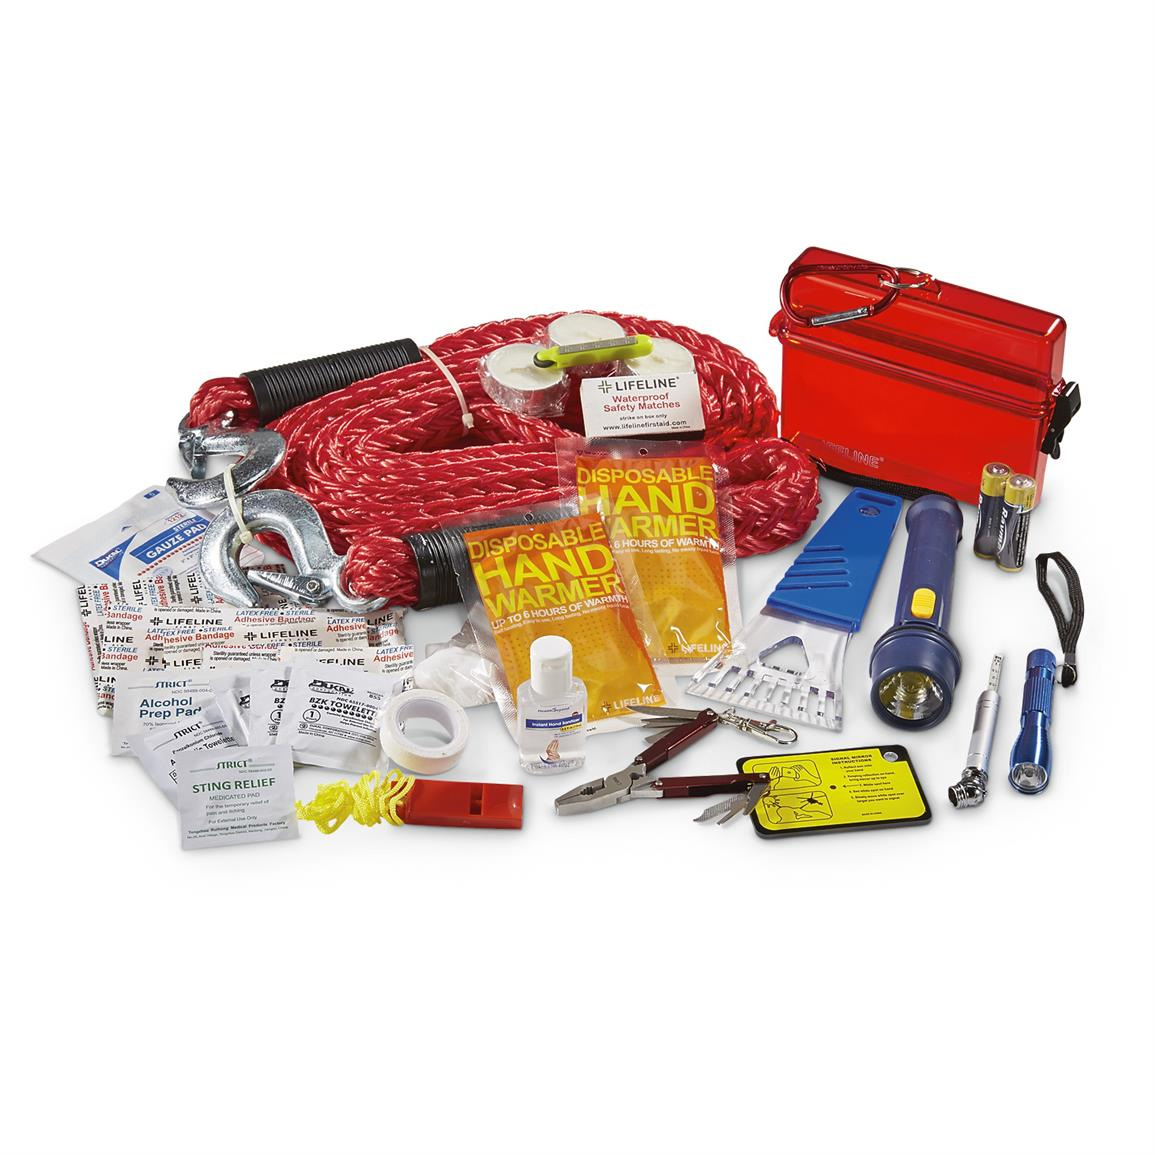 33-Pc. Vehicle Emergency Kit